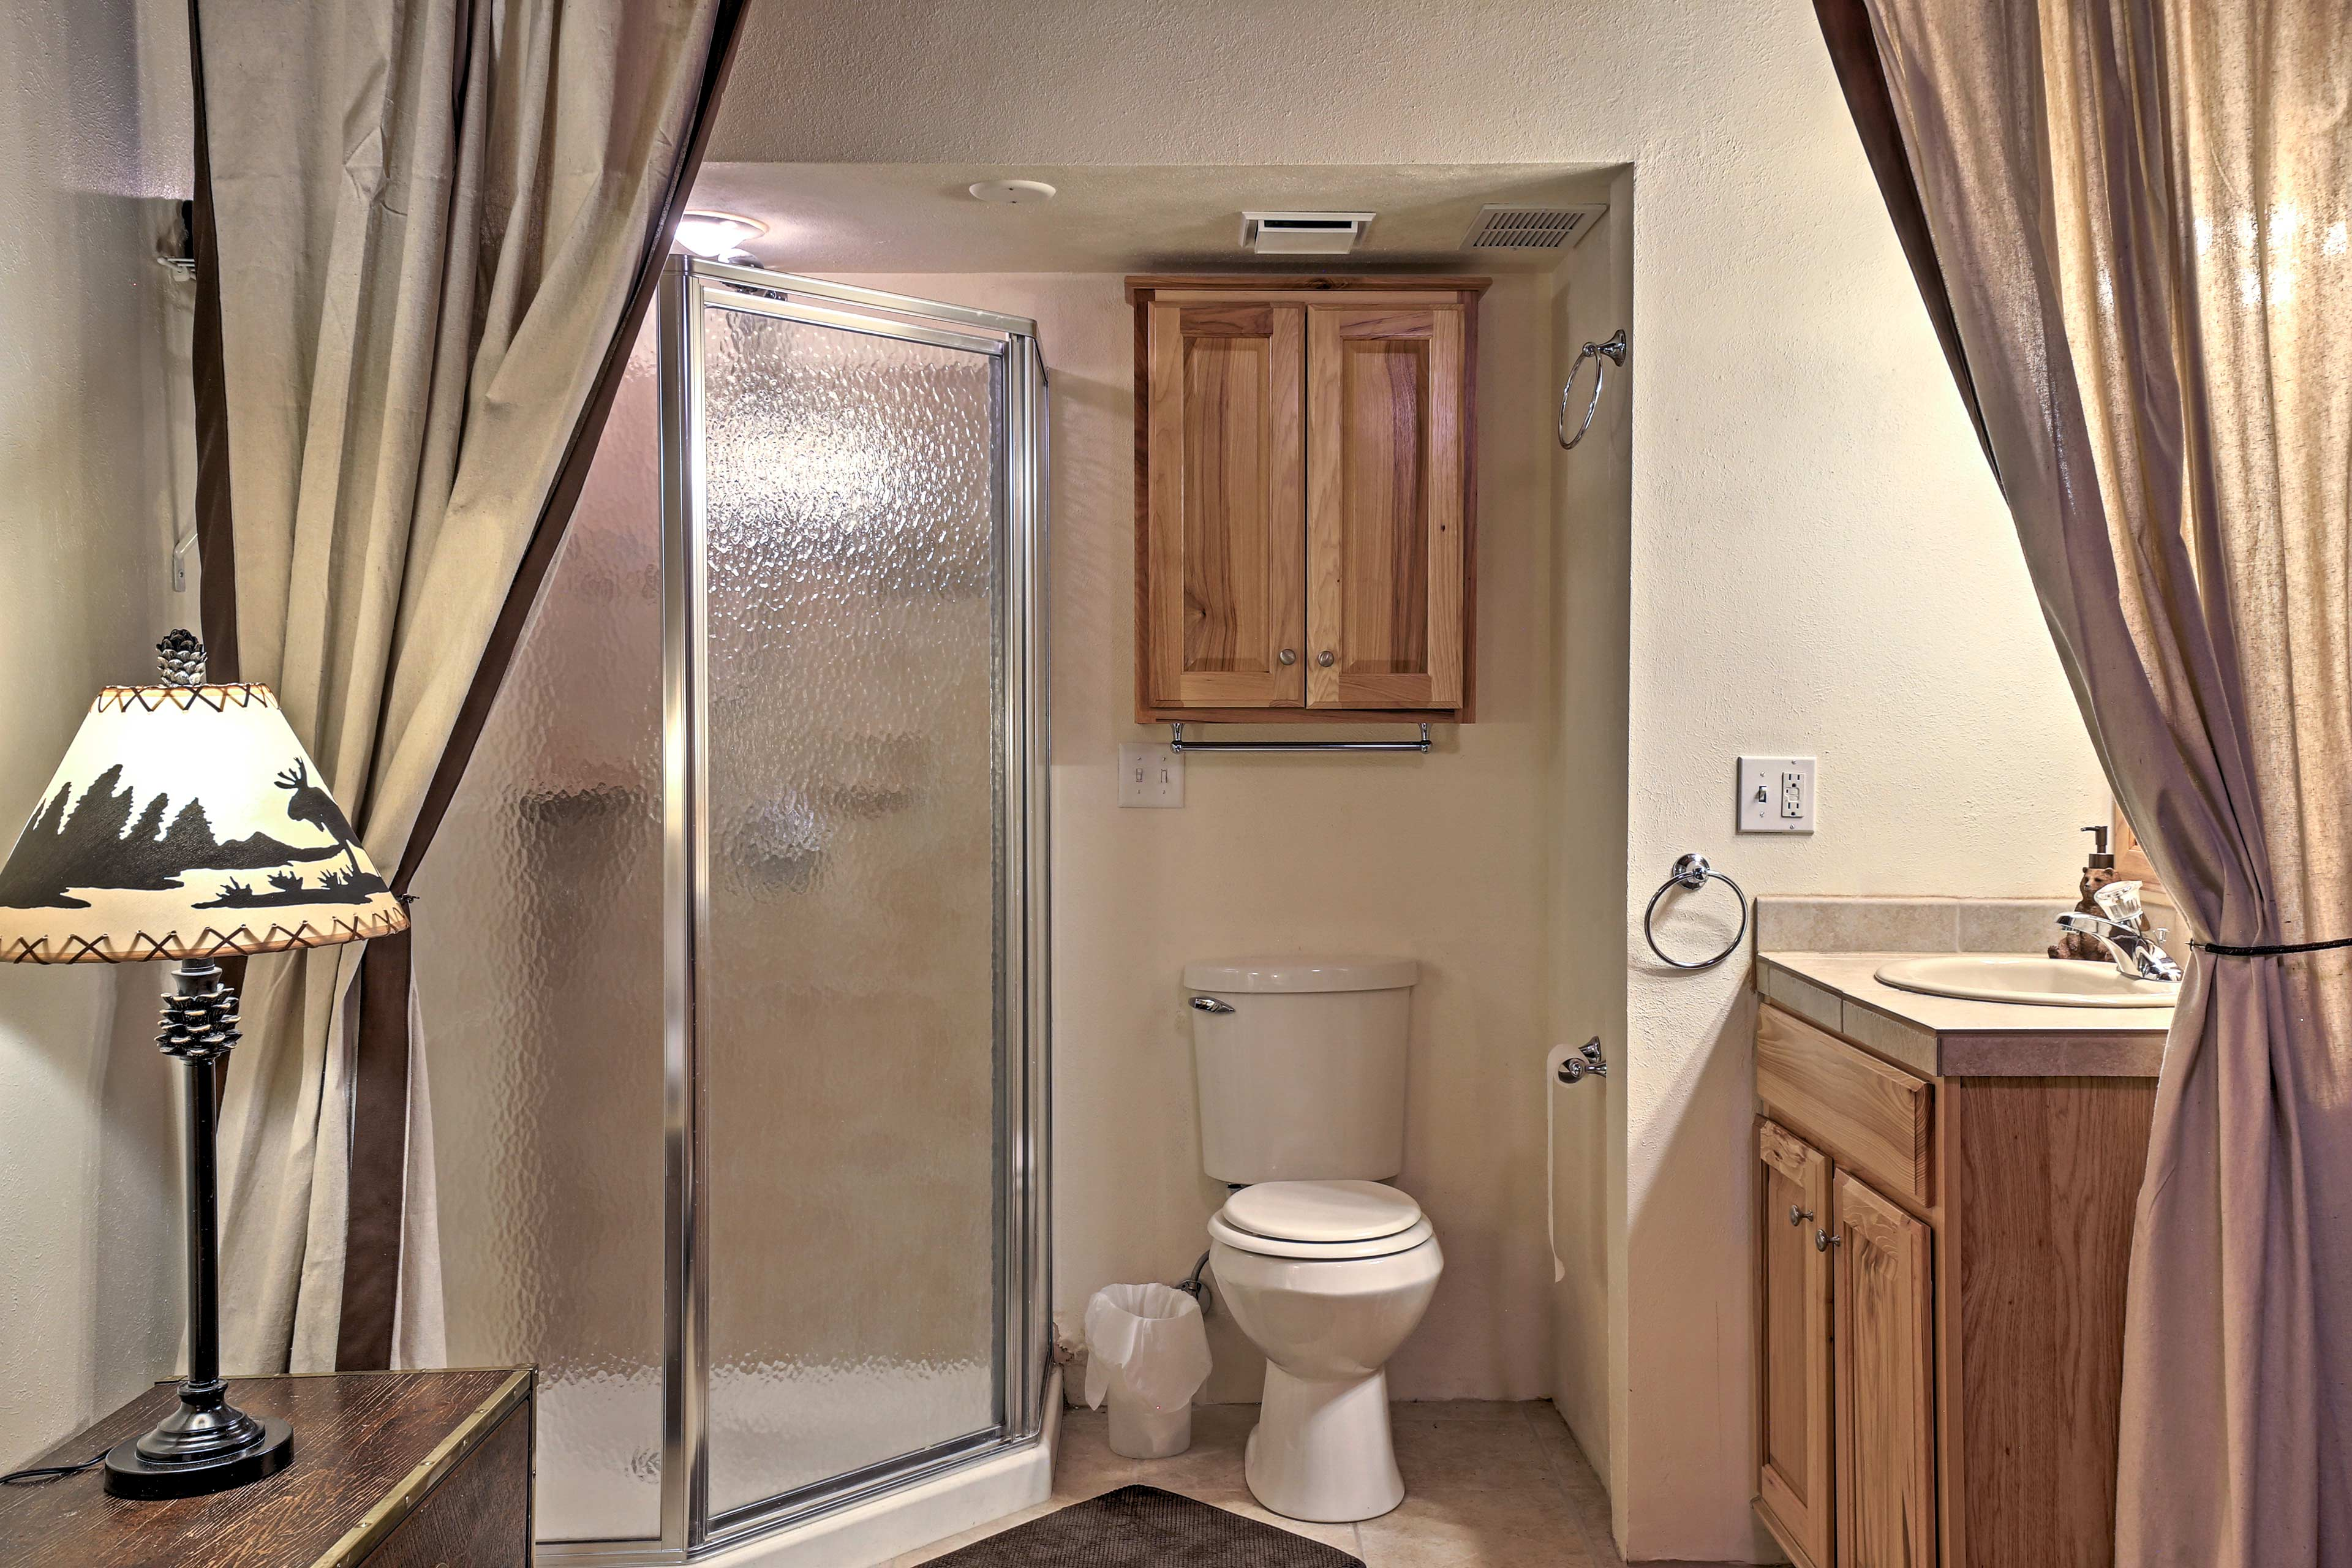 Rinse off the trail dust in the en-suite bathroom.